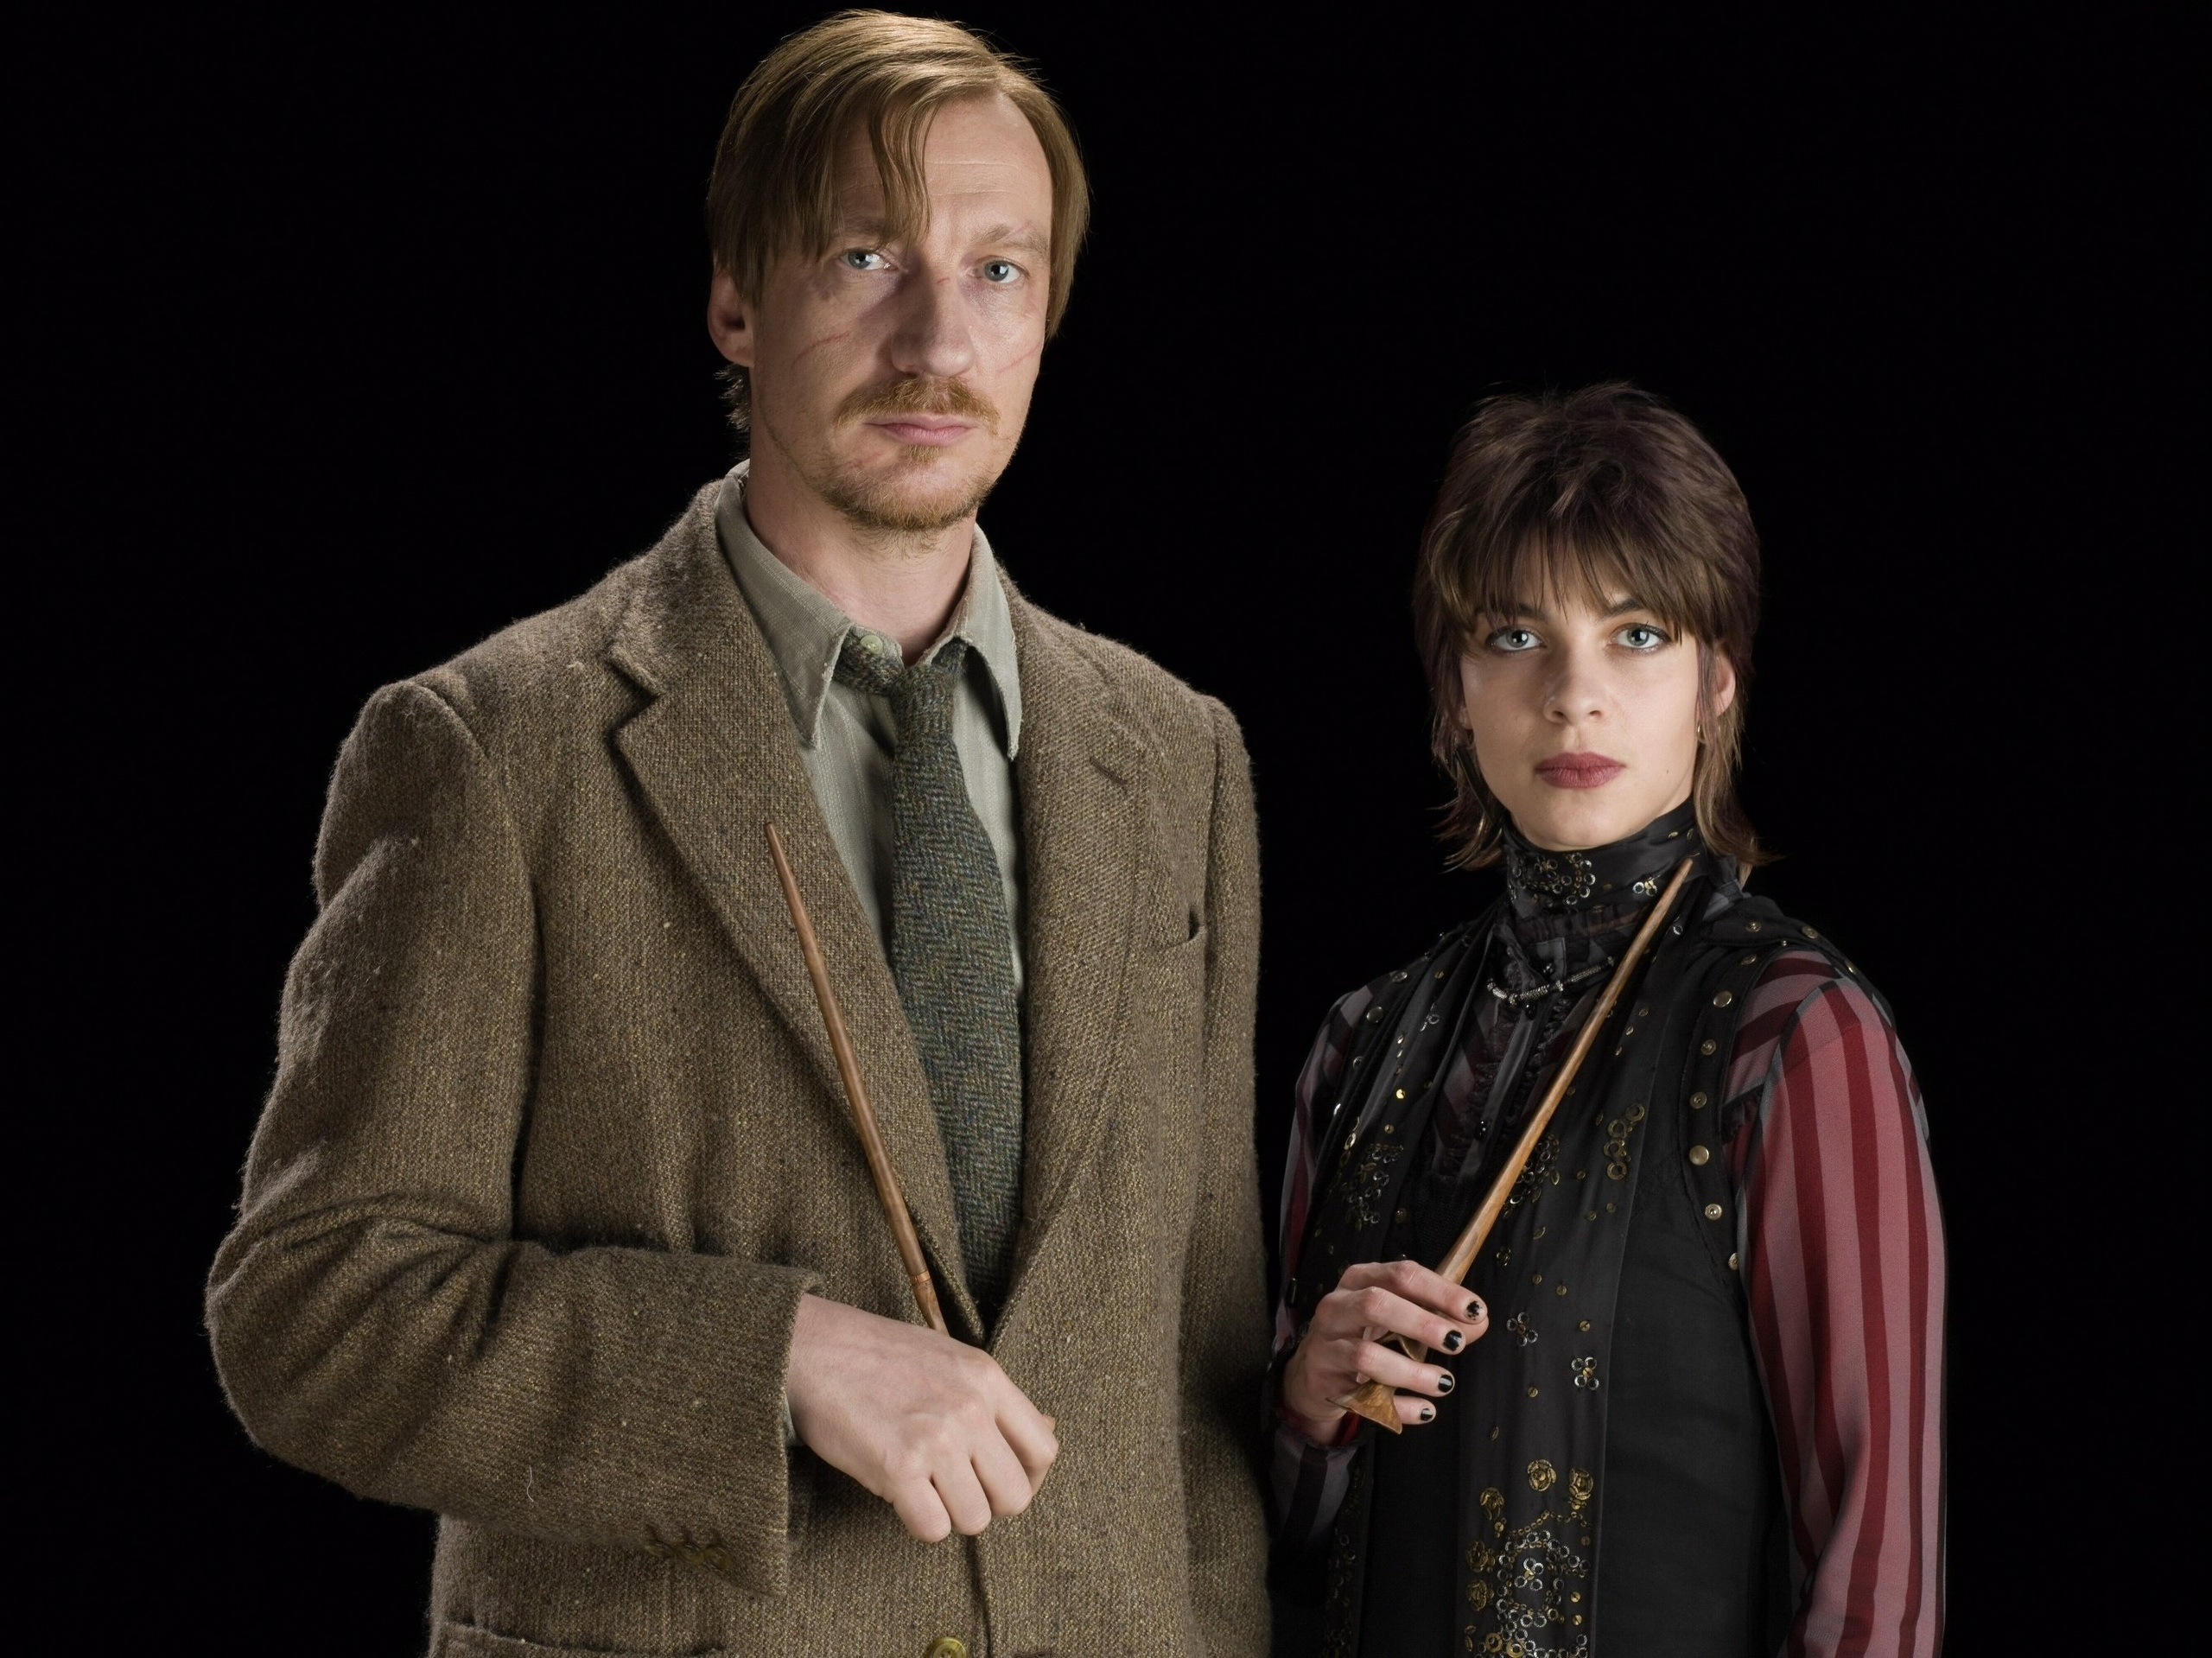 http://images4.fanpop.com/image/photos/17100000/Remus-Lupin-remus-lupin-17165287-2560-1919.jpg